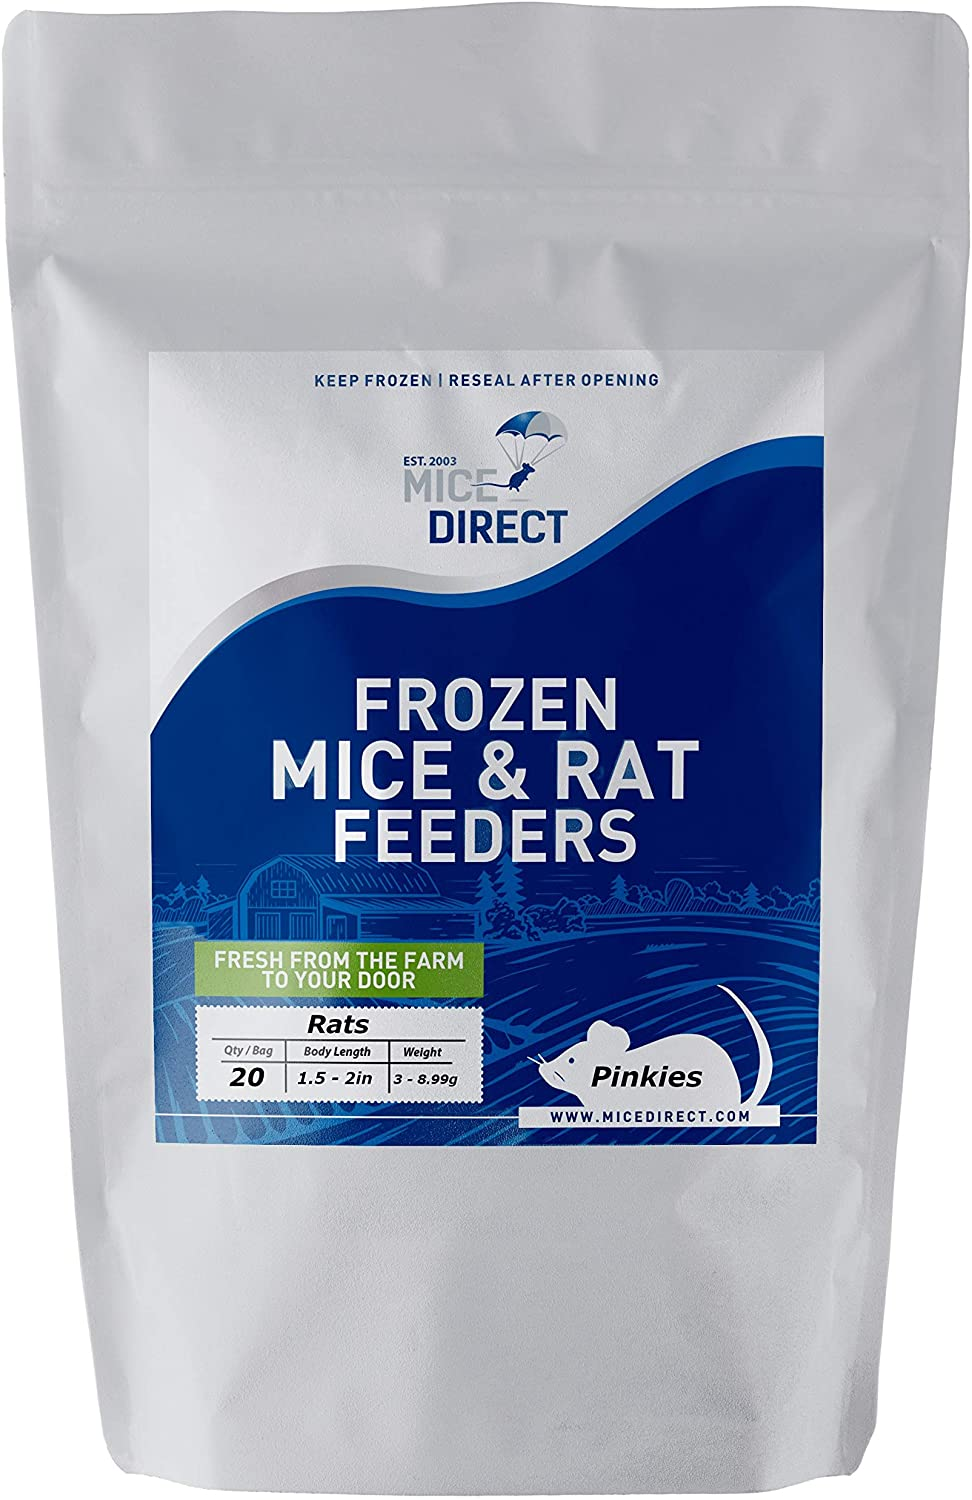 MiceDirect 20 Pack of Frozen Pinkie Feeder Rats - Food for Corn Snakes, Ball Pythons, Lizards and Other Pet Reptiles - Freshest Snake Feed Supplies